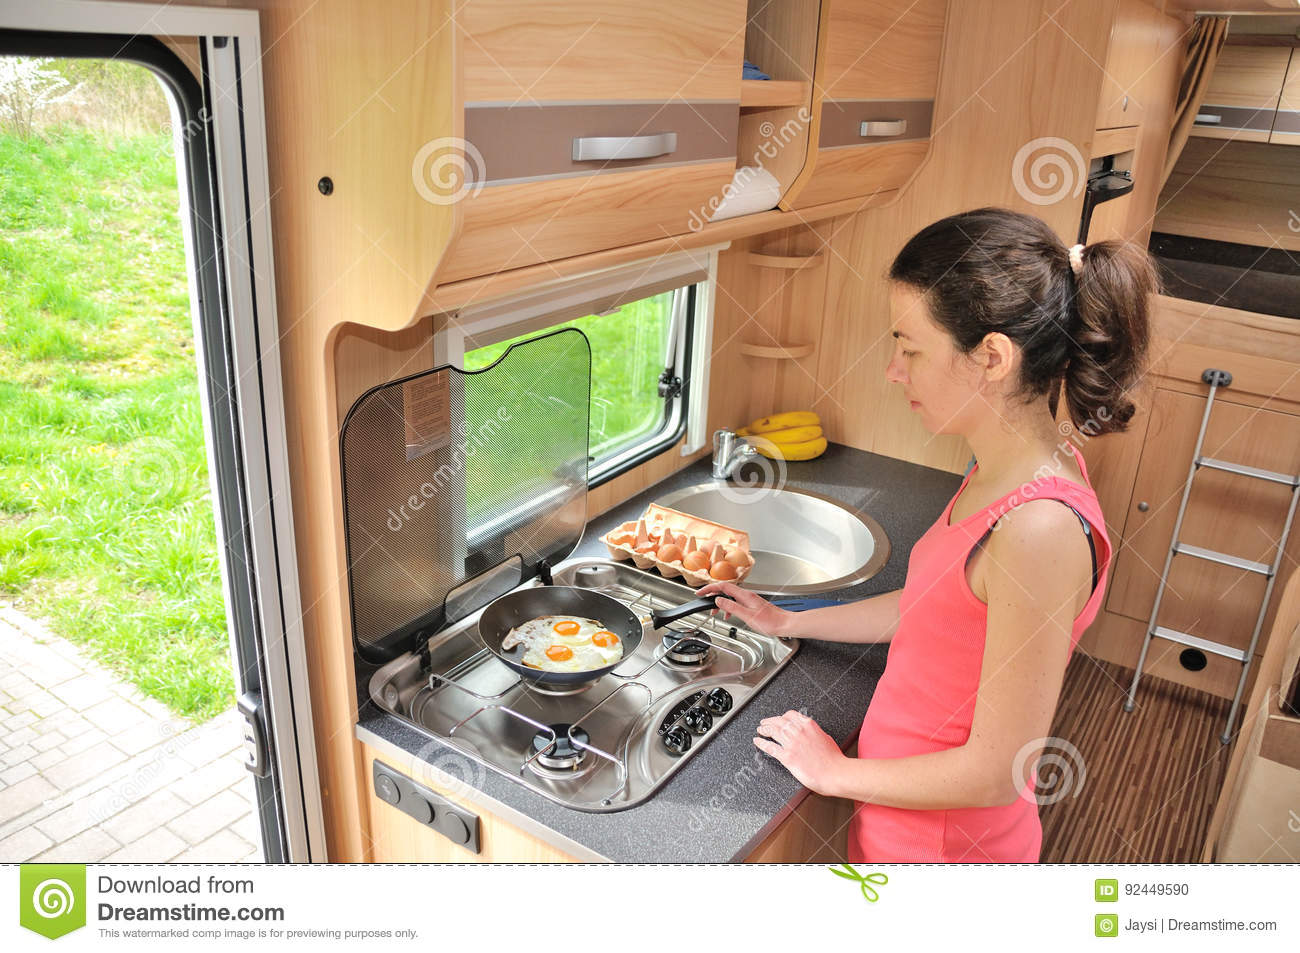 Family vacation, RV holiday trip, travel and camping, woman cooking in camper, motorhome interior